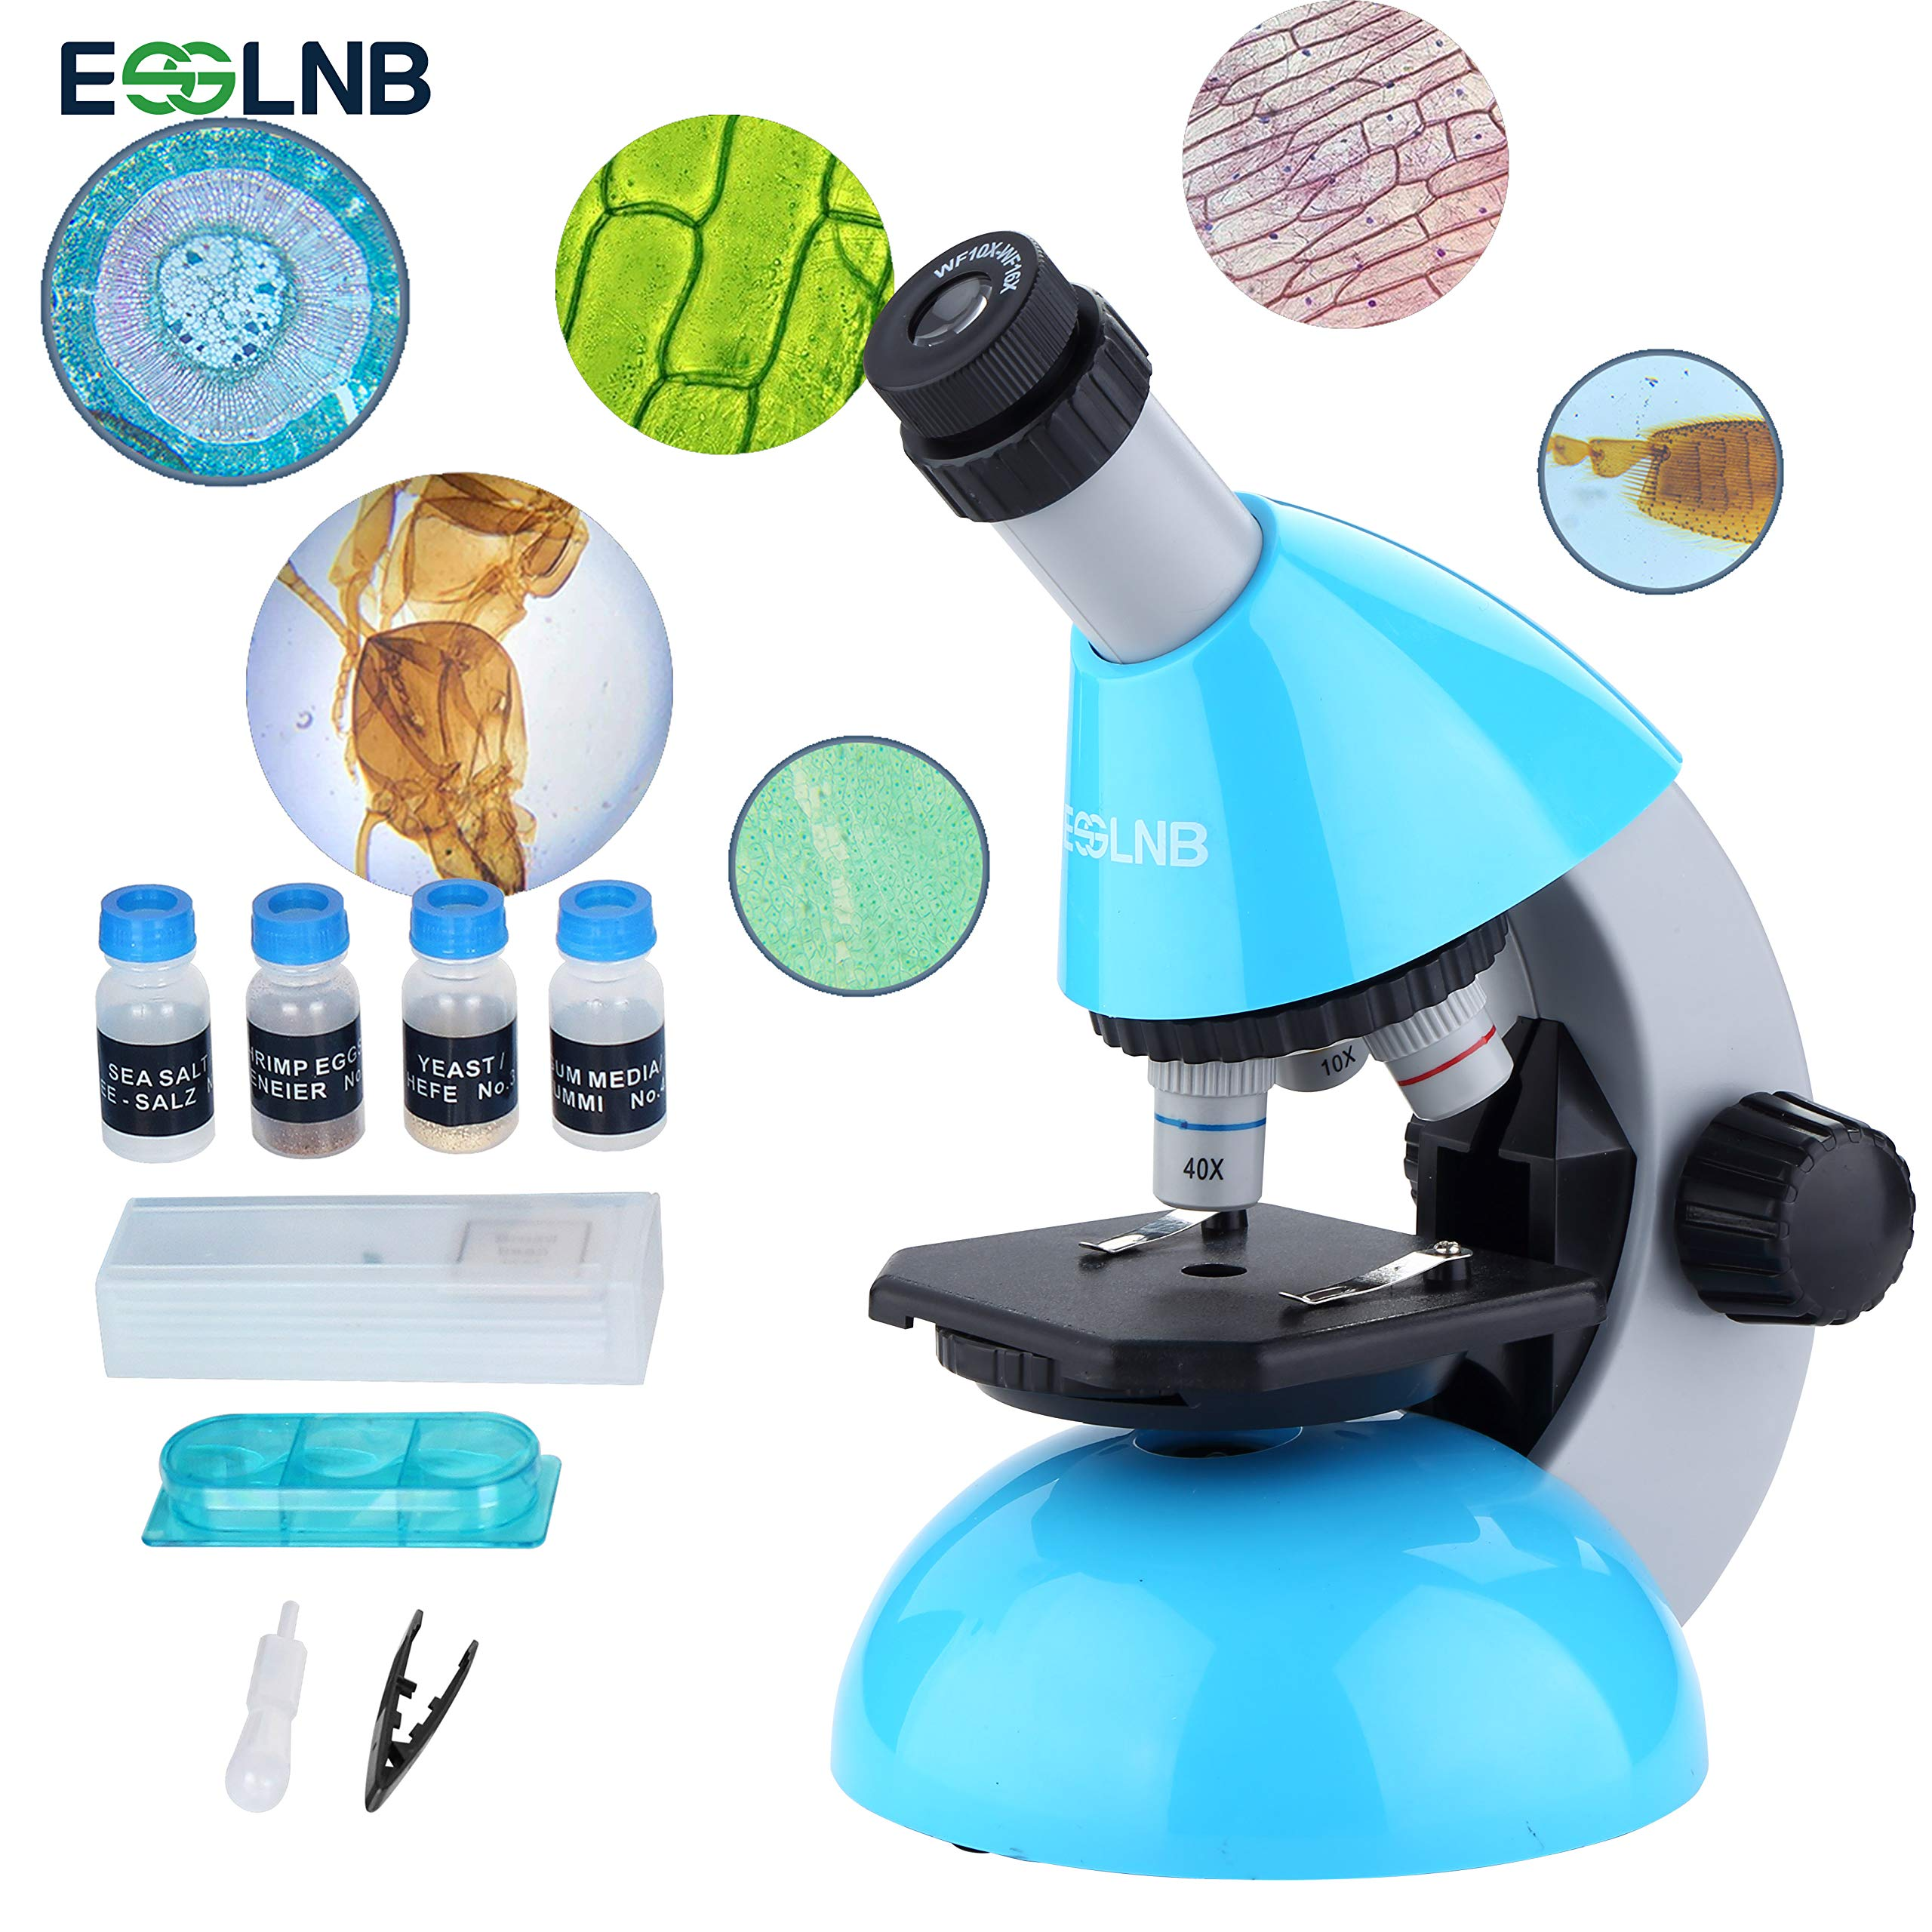 ESSLNB Kids Microscope with Science Kits and Slides LED Beginner Microscope 40X- 640X with Zoom Eyepiece Monocular Microscope for Students